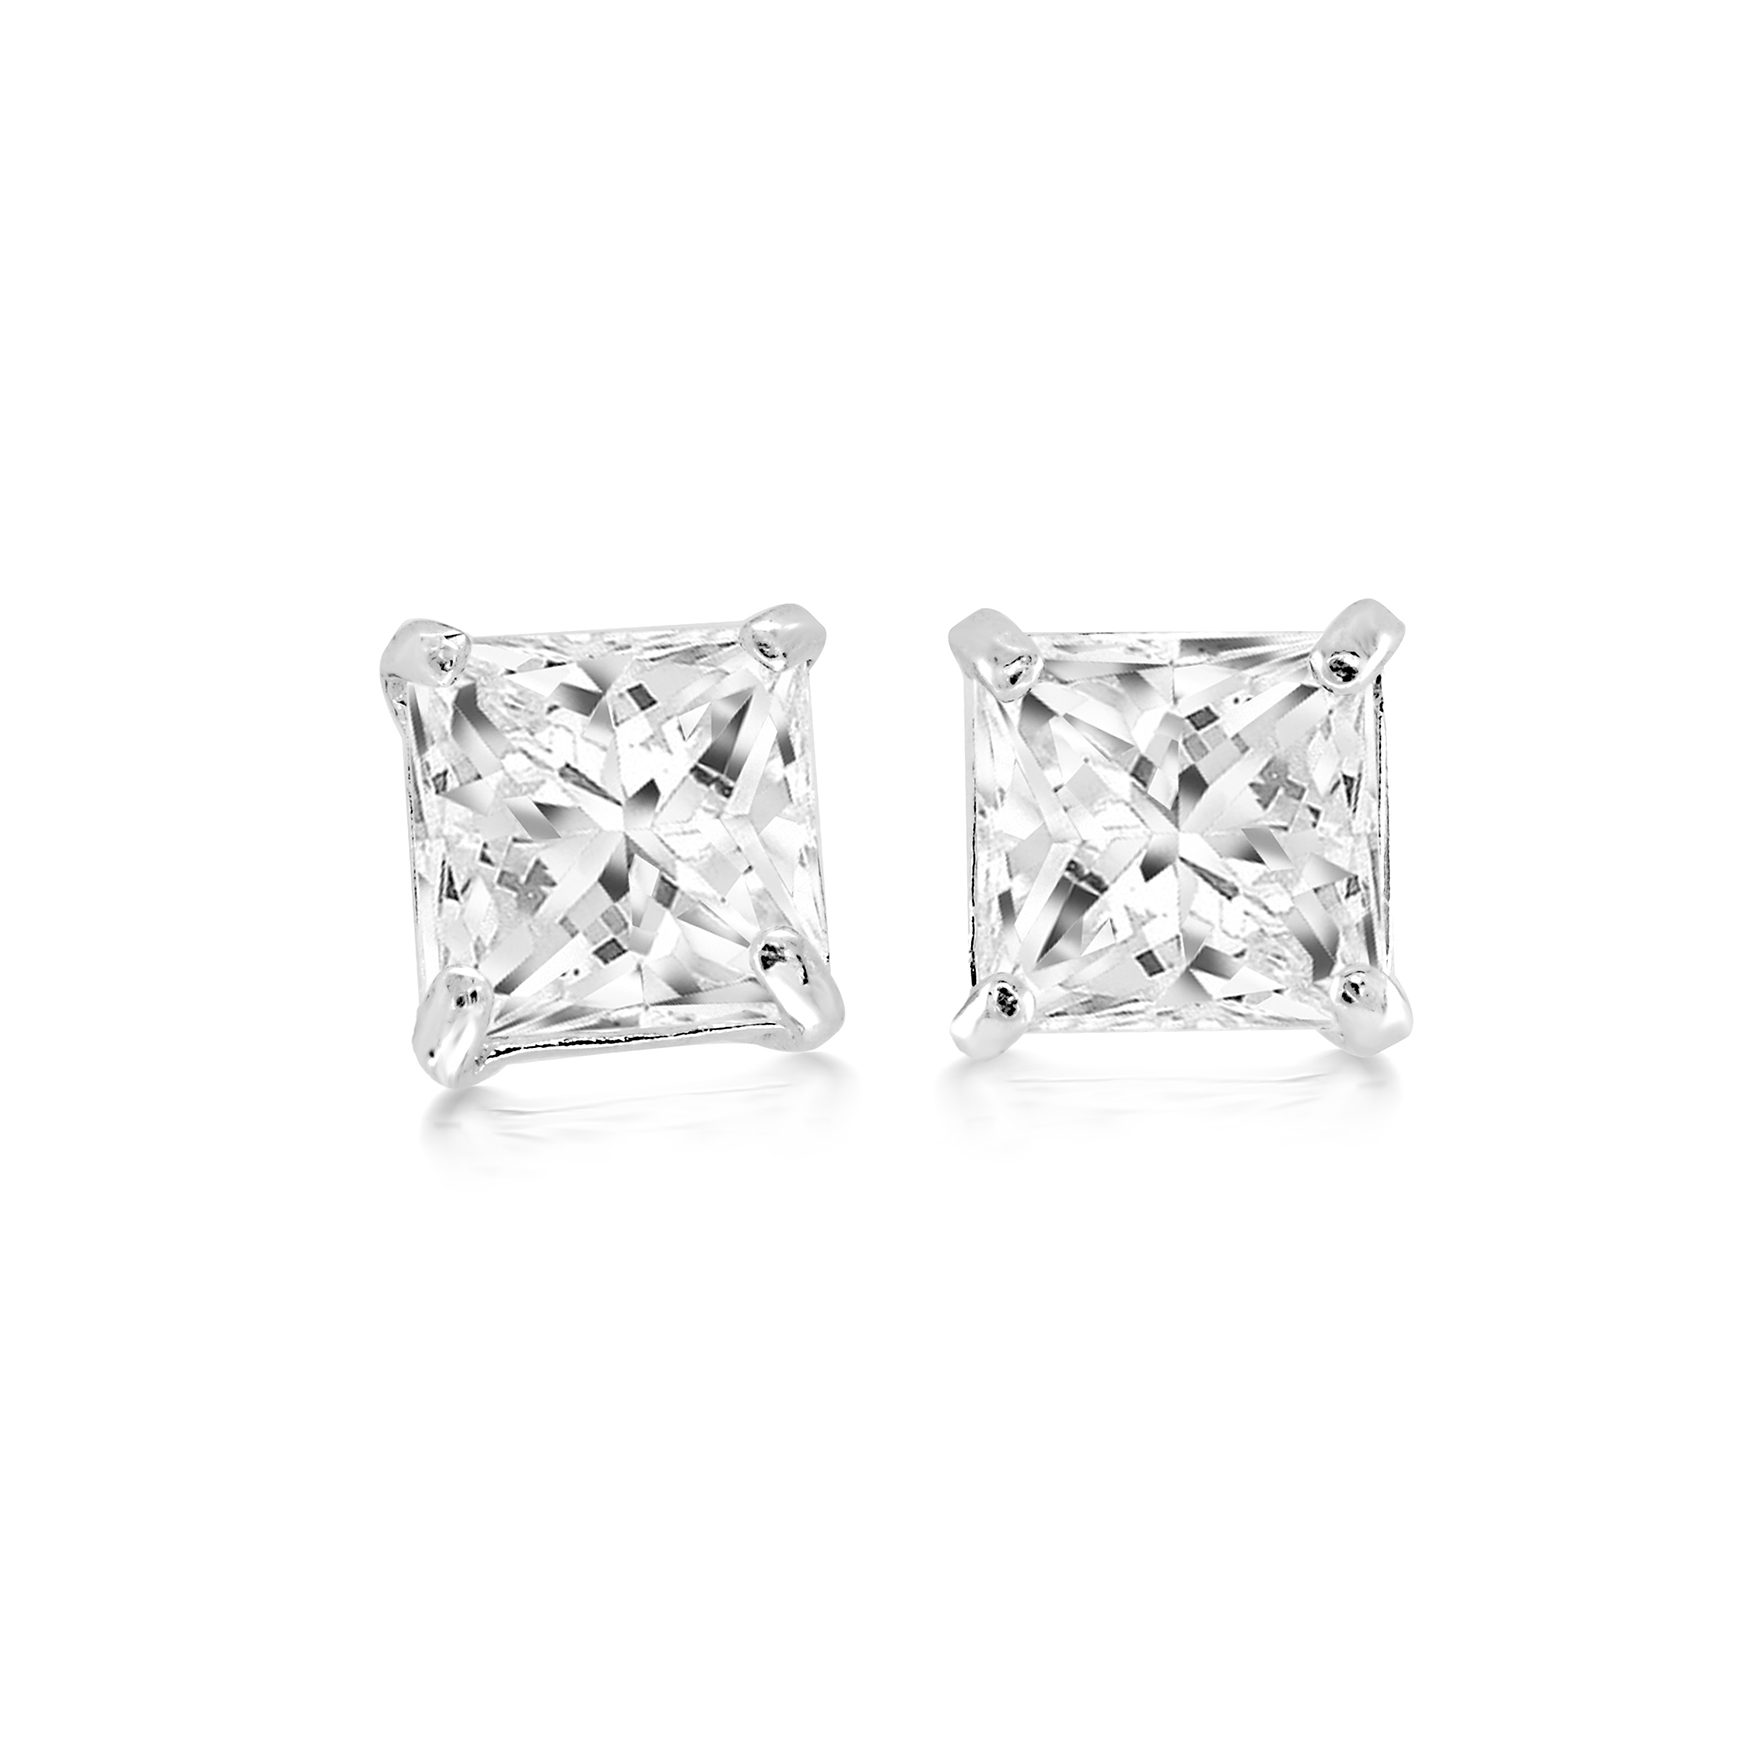 Boucles d'oreilles à tiges fixes serties de zircons cubiques - en or blanc 14K